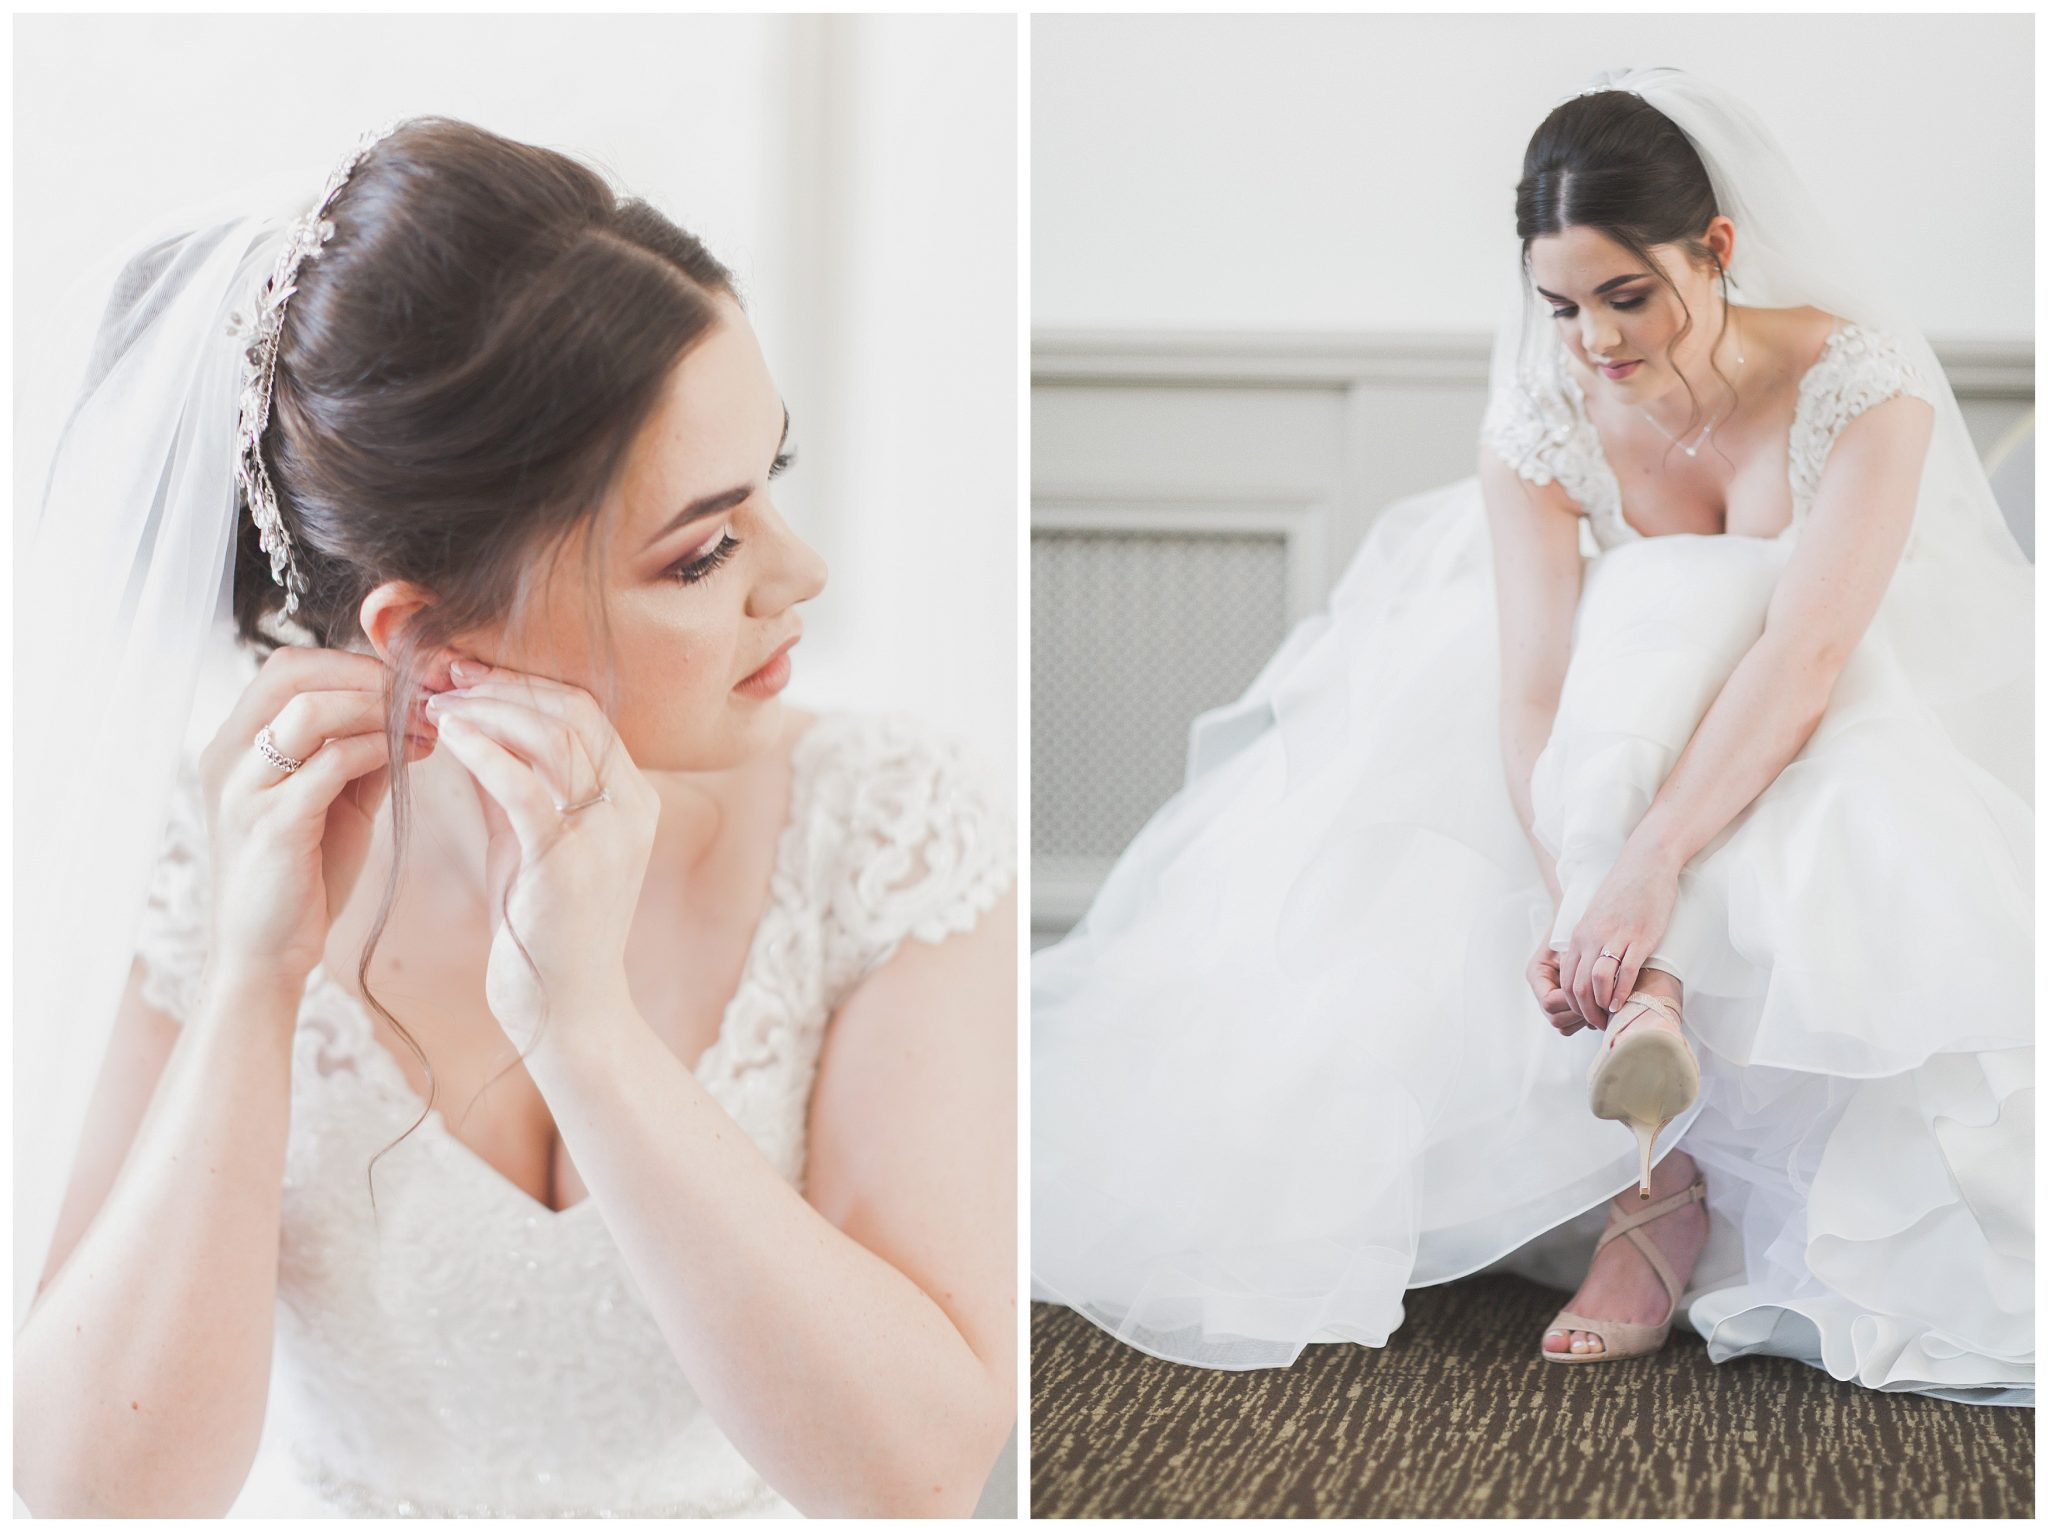 Bride putting shoes and earnings on